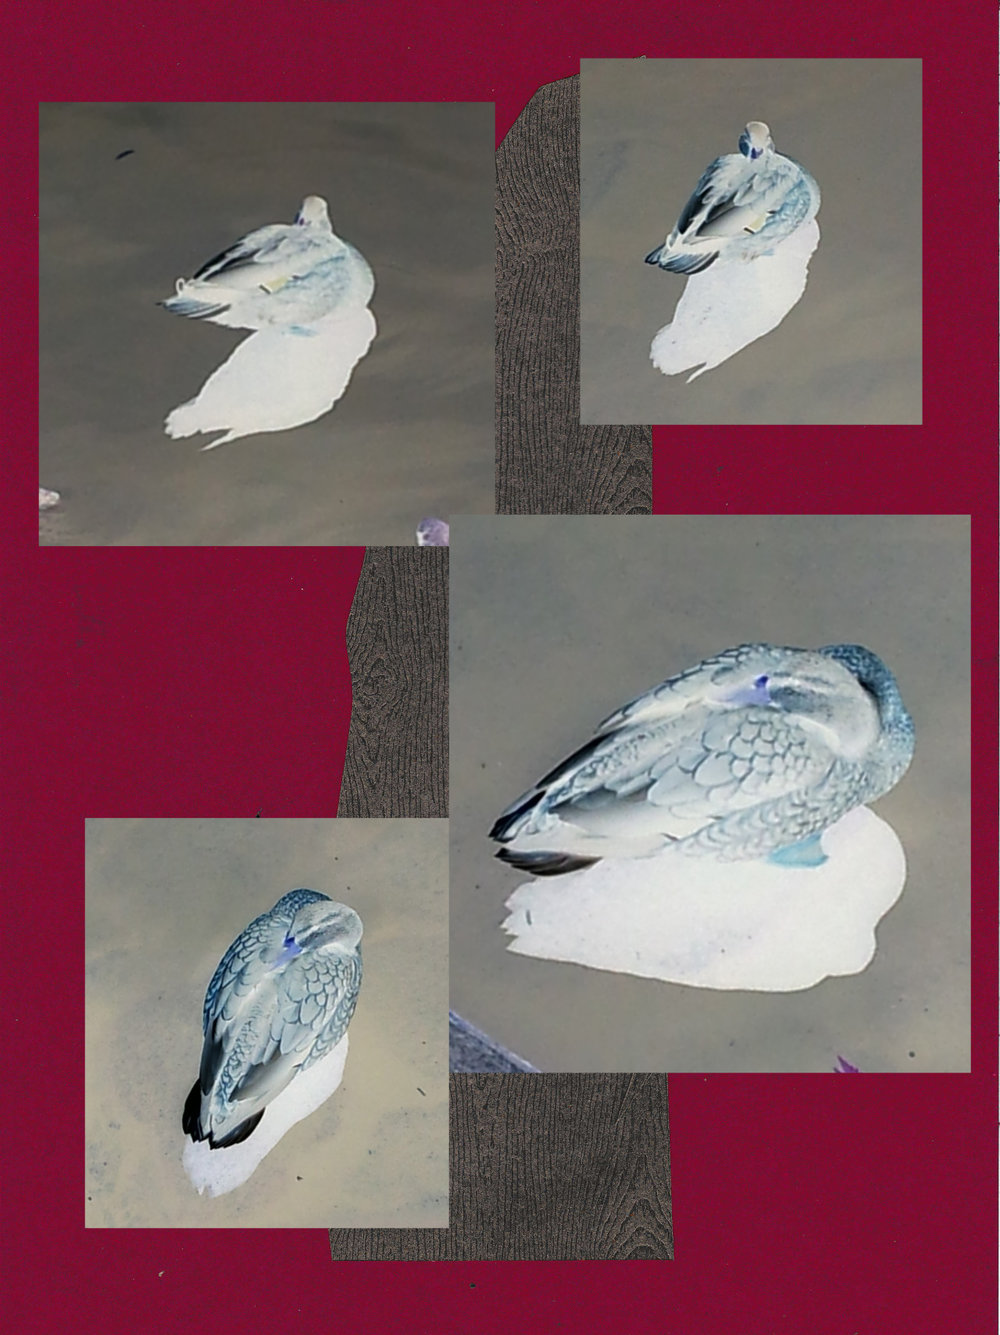 013 ducks, handmade paper on photographs.jpg